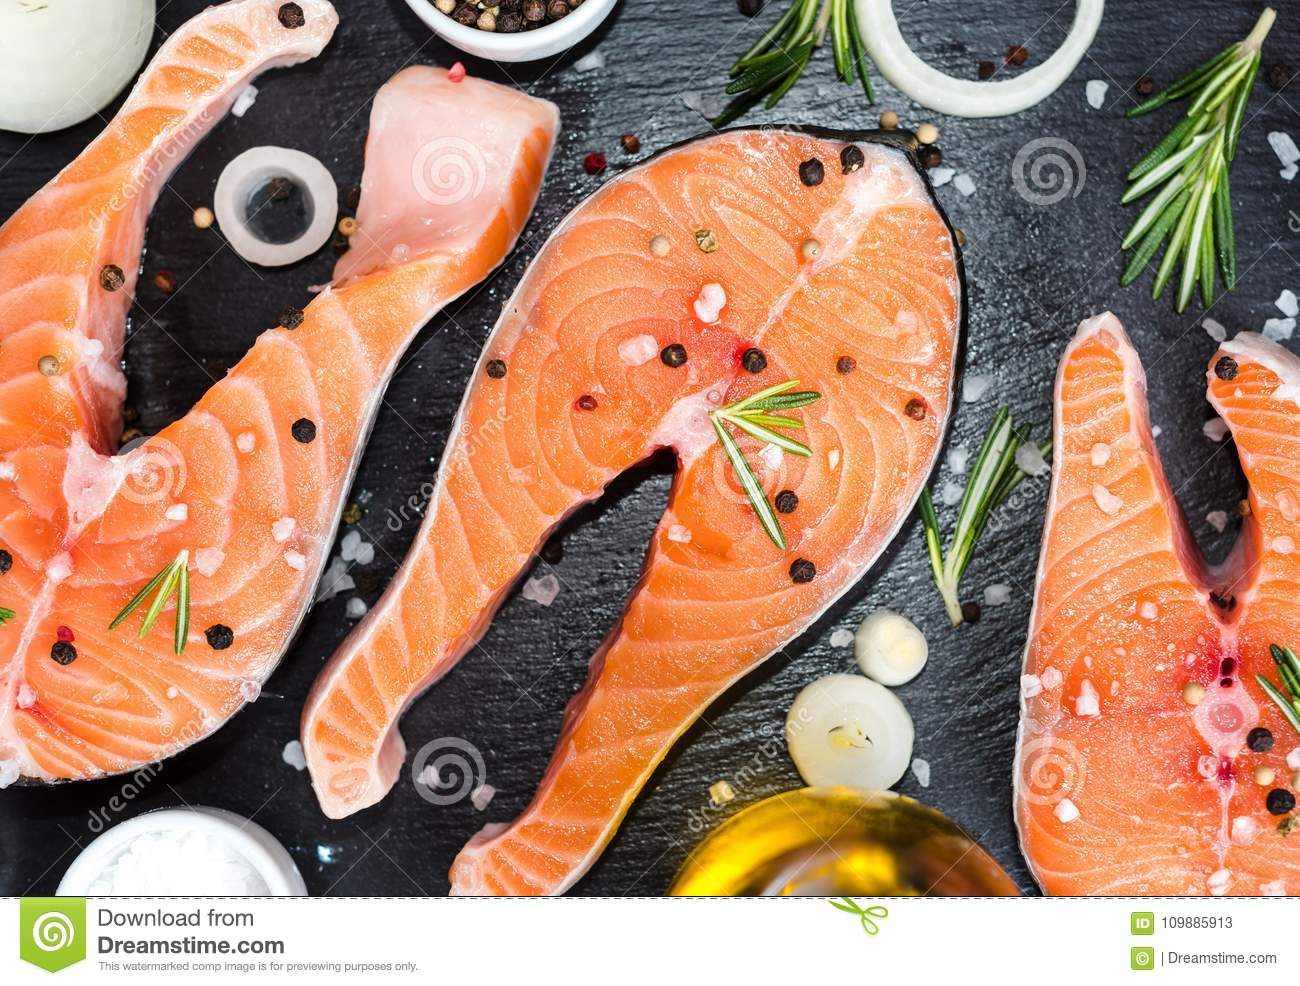 Fresh Raw Unprepared Fish Salmon Or Trout Steaks In A Skillet For